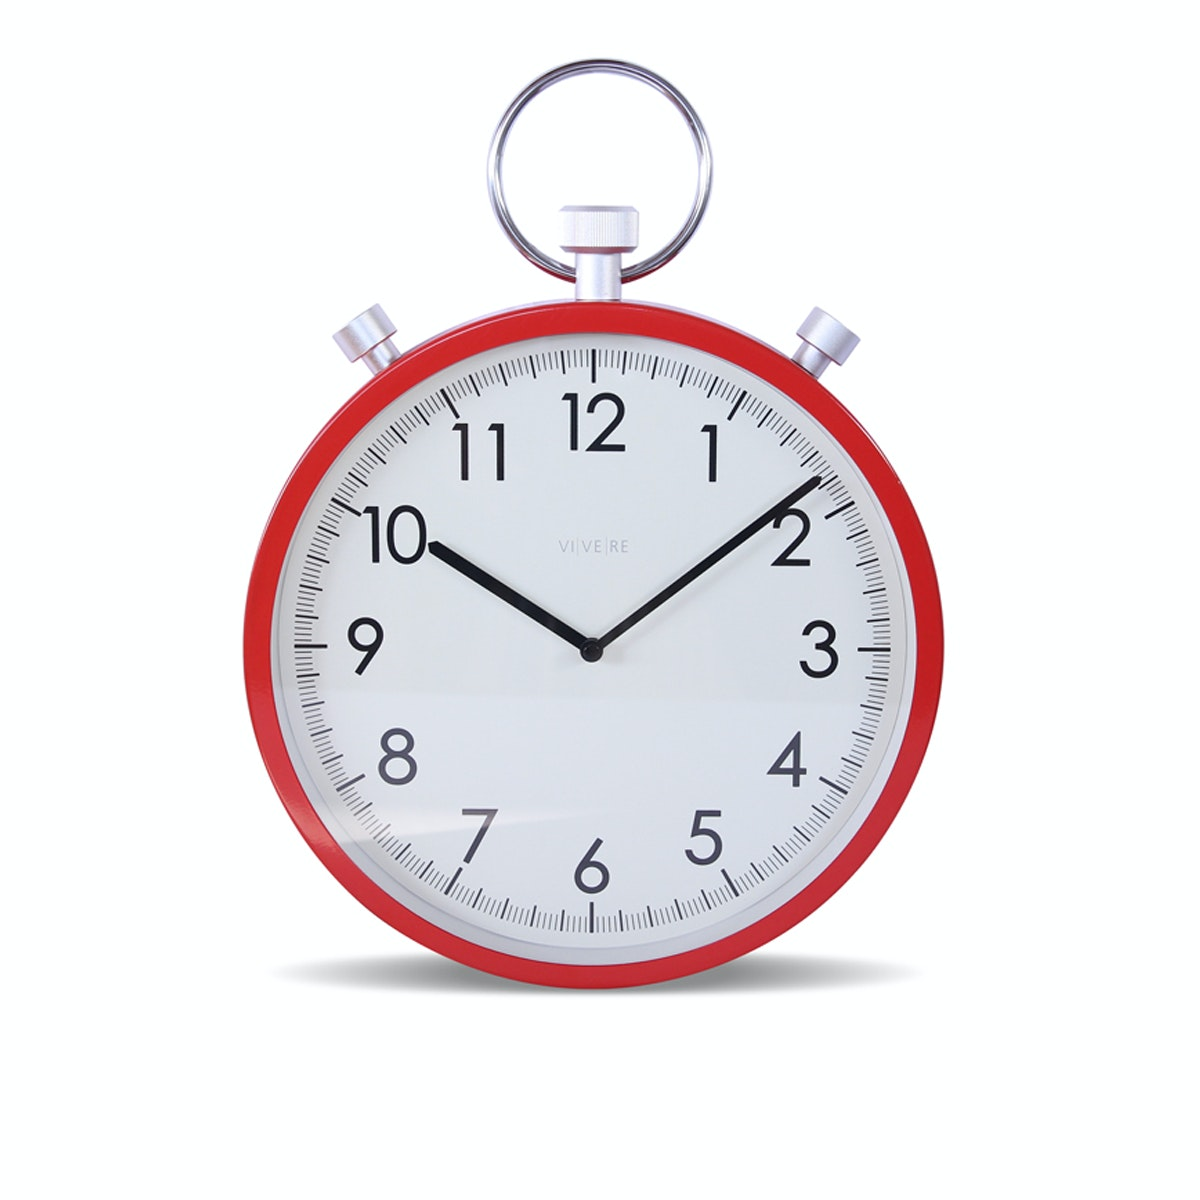 Vivere Wall Clock Stopwatch Red 30.5cm